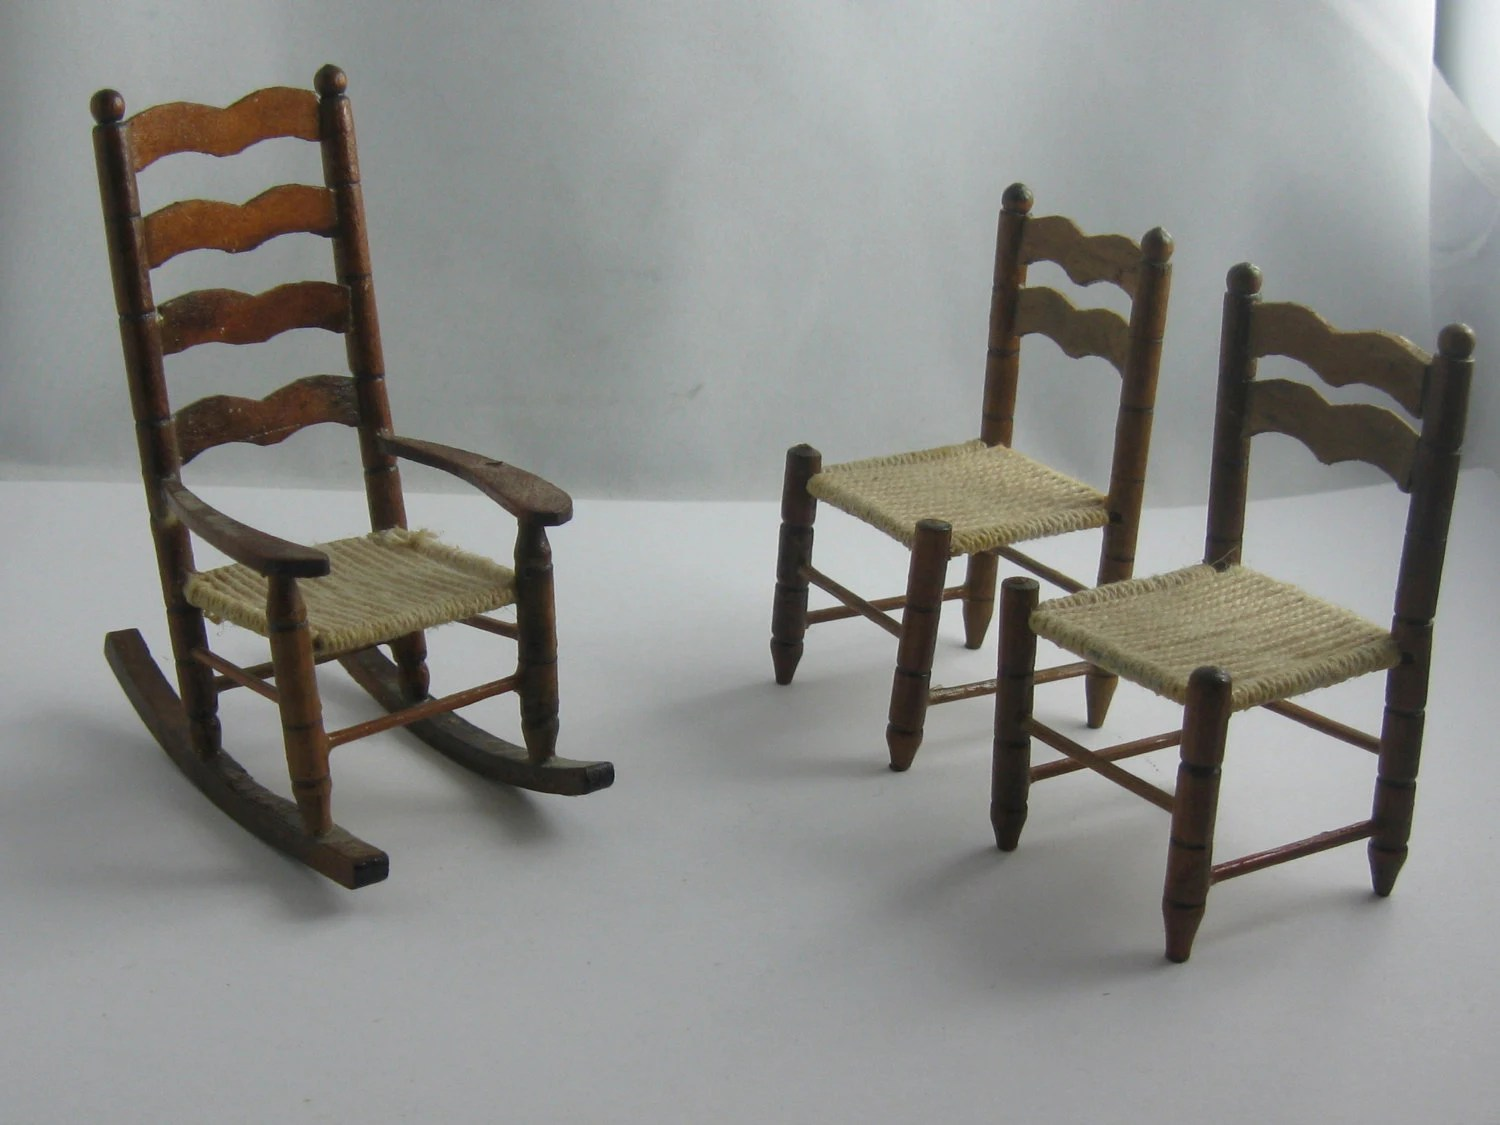 Miniature Chairs Miniature Dollhouse Furniture A Rocking Chair And 2 Chairs